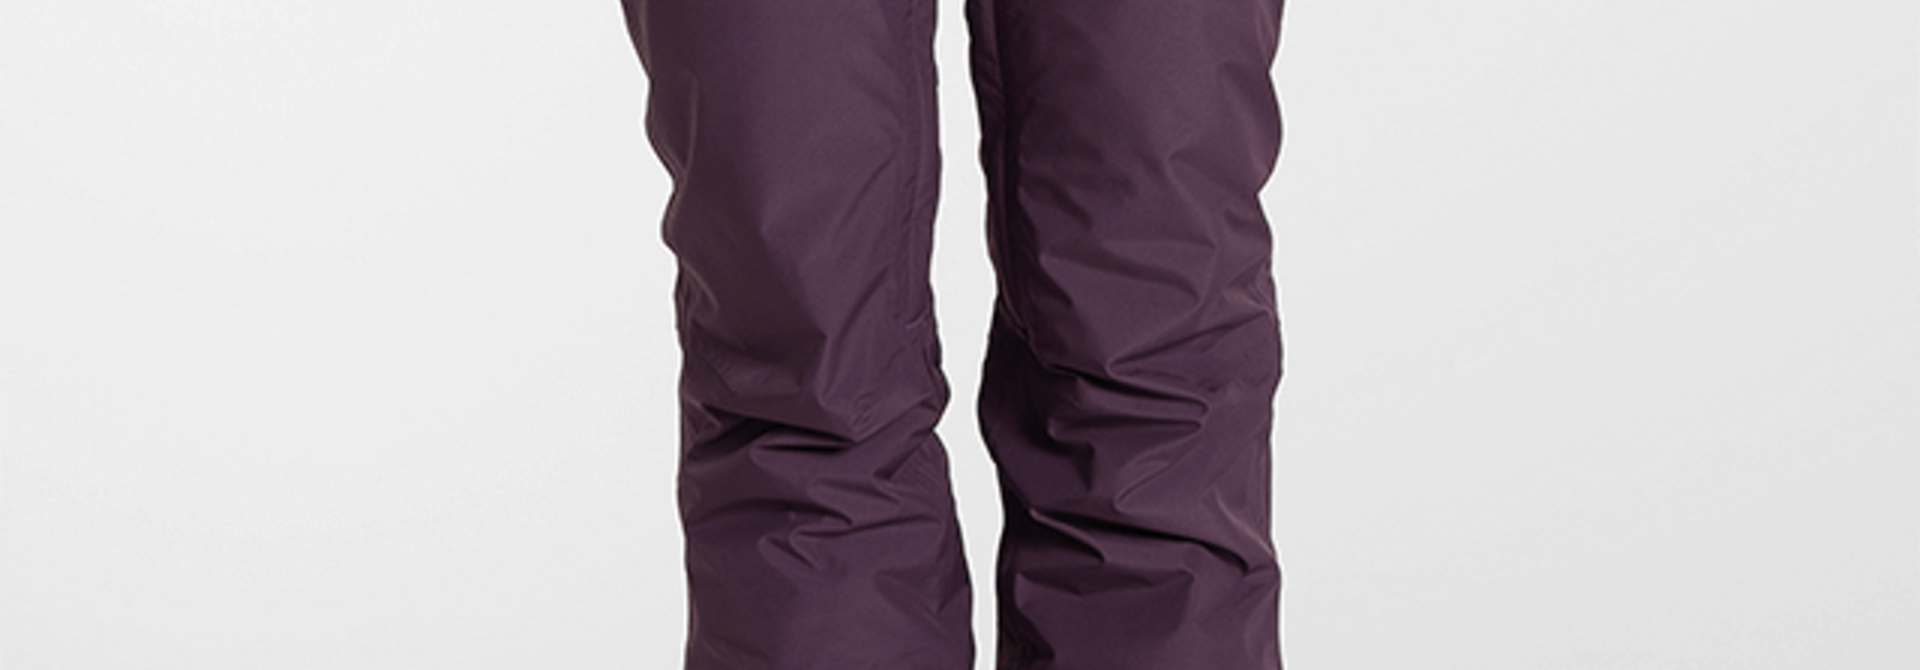 Trego GTX 2L Insulated Pant